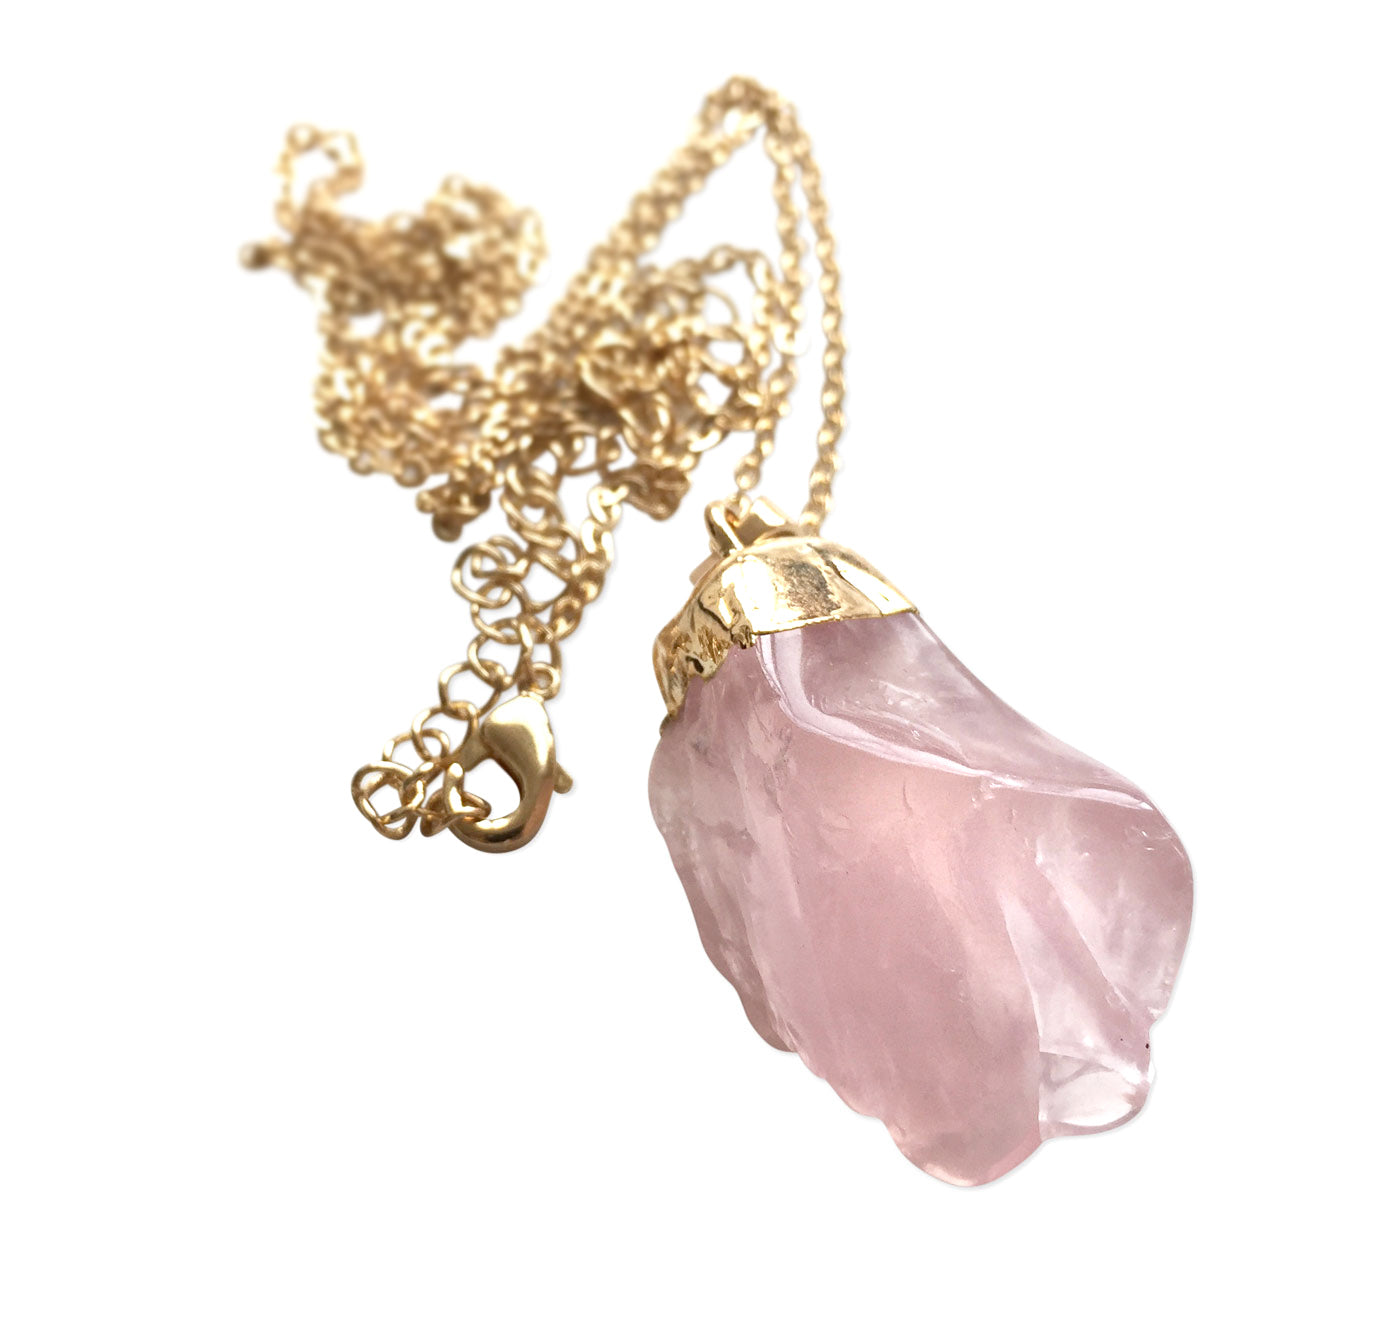 Completely new Rose Quartz Crystal Necklace, by Well Done Goods CP43